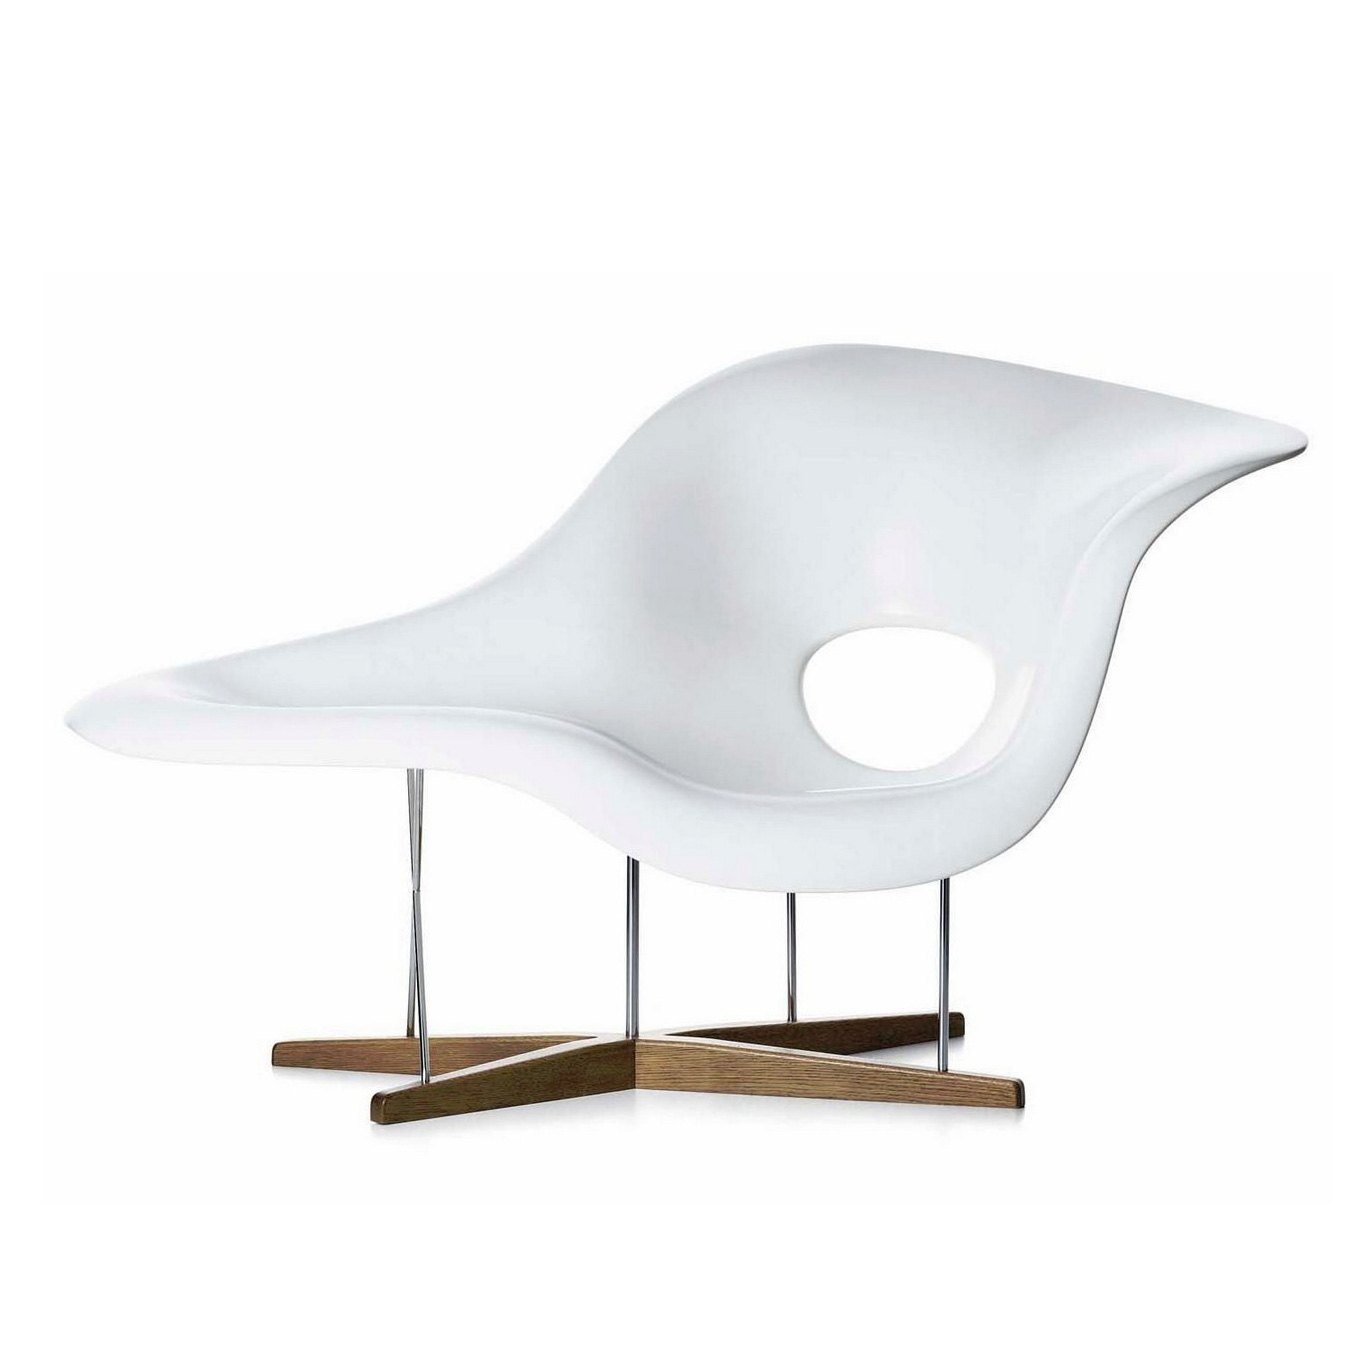 Charles eames chaise longue bauhaus chaiselongue for Chaise charles eames tissu